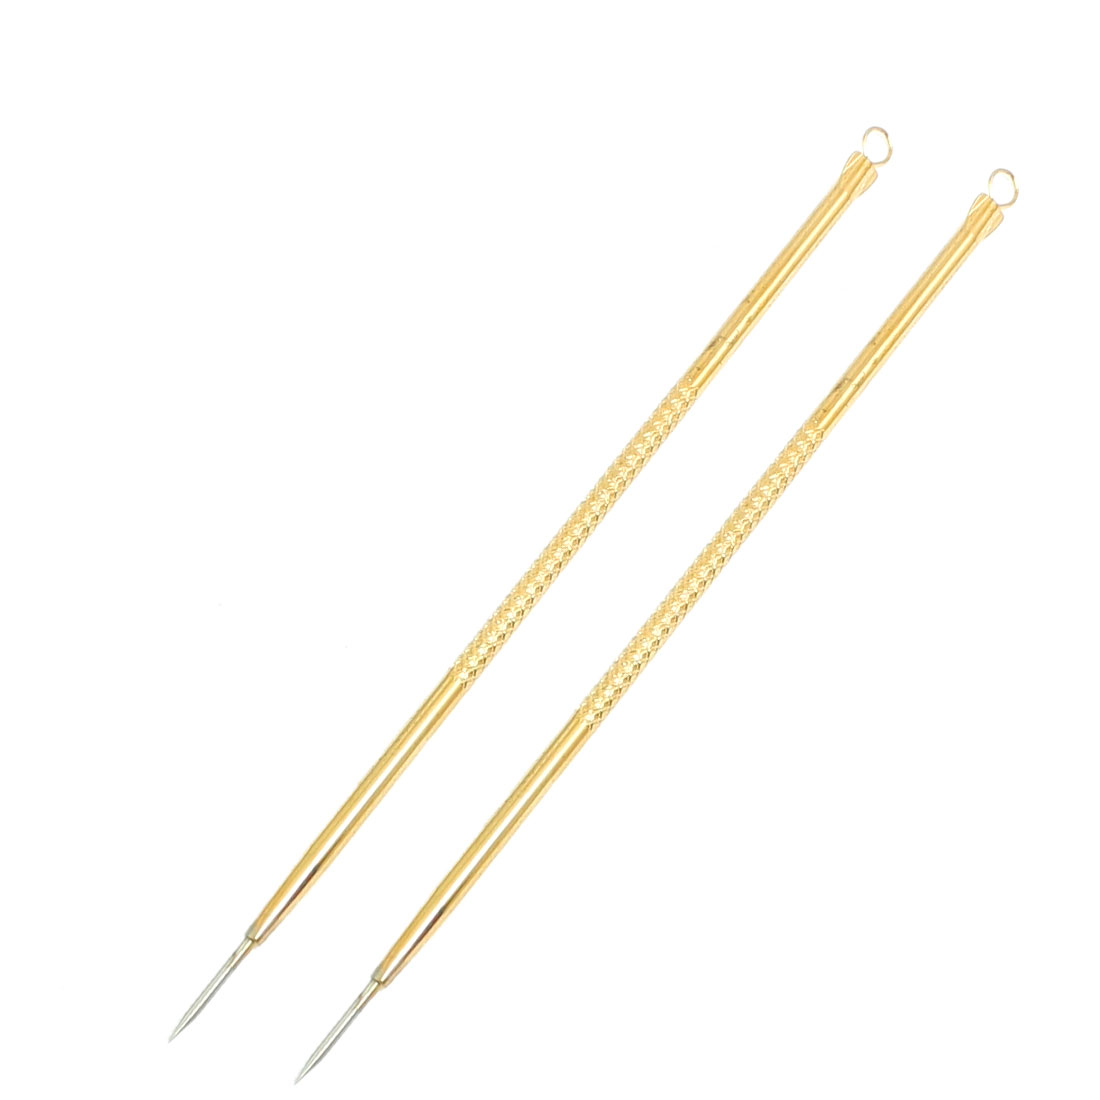 "2 Pcs Facial Blackhead Extractor Acne Remover Needle Gold Tone 4.9"" long"